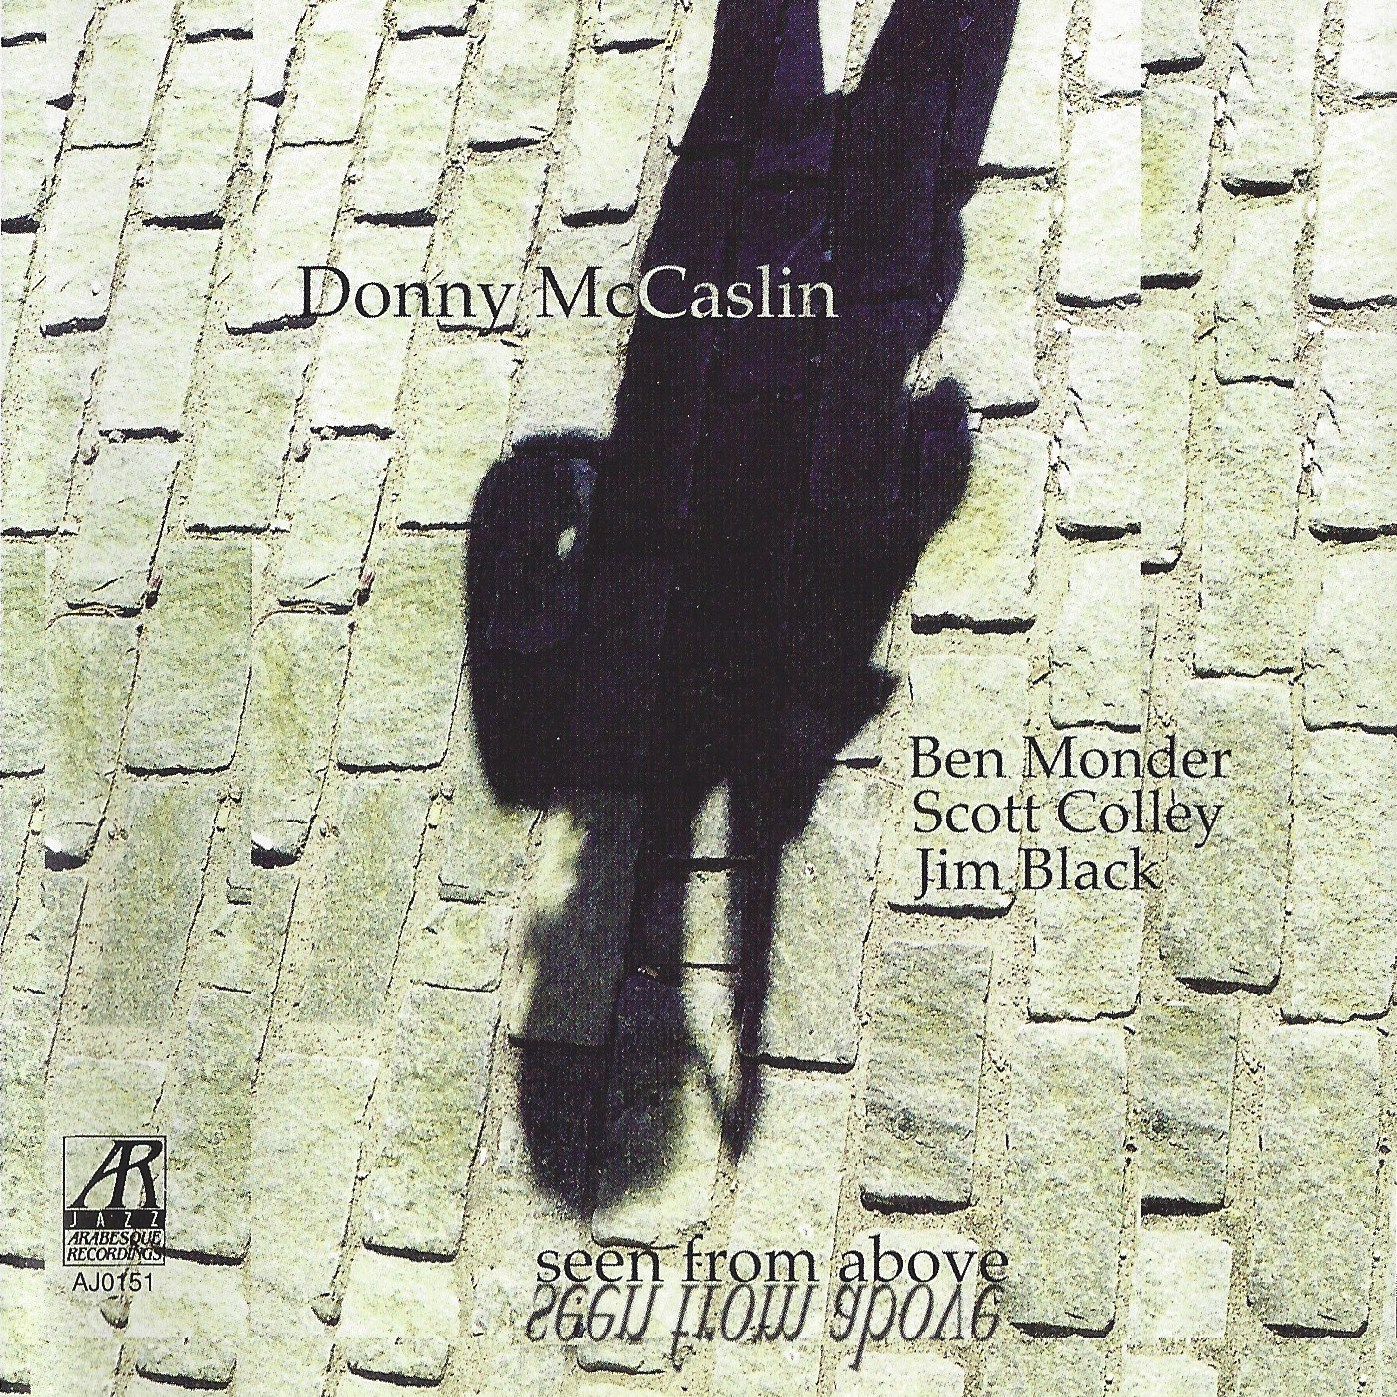 AJ0151  | Seen From Above |  Donny McCaslin